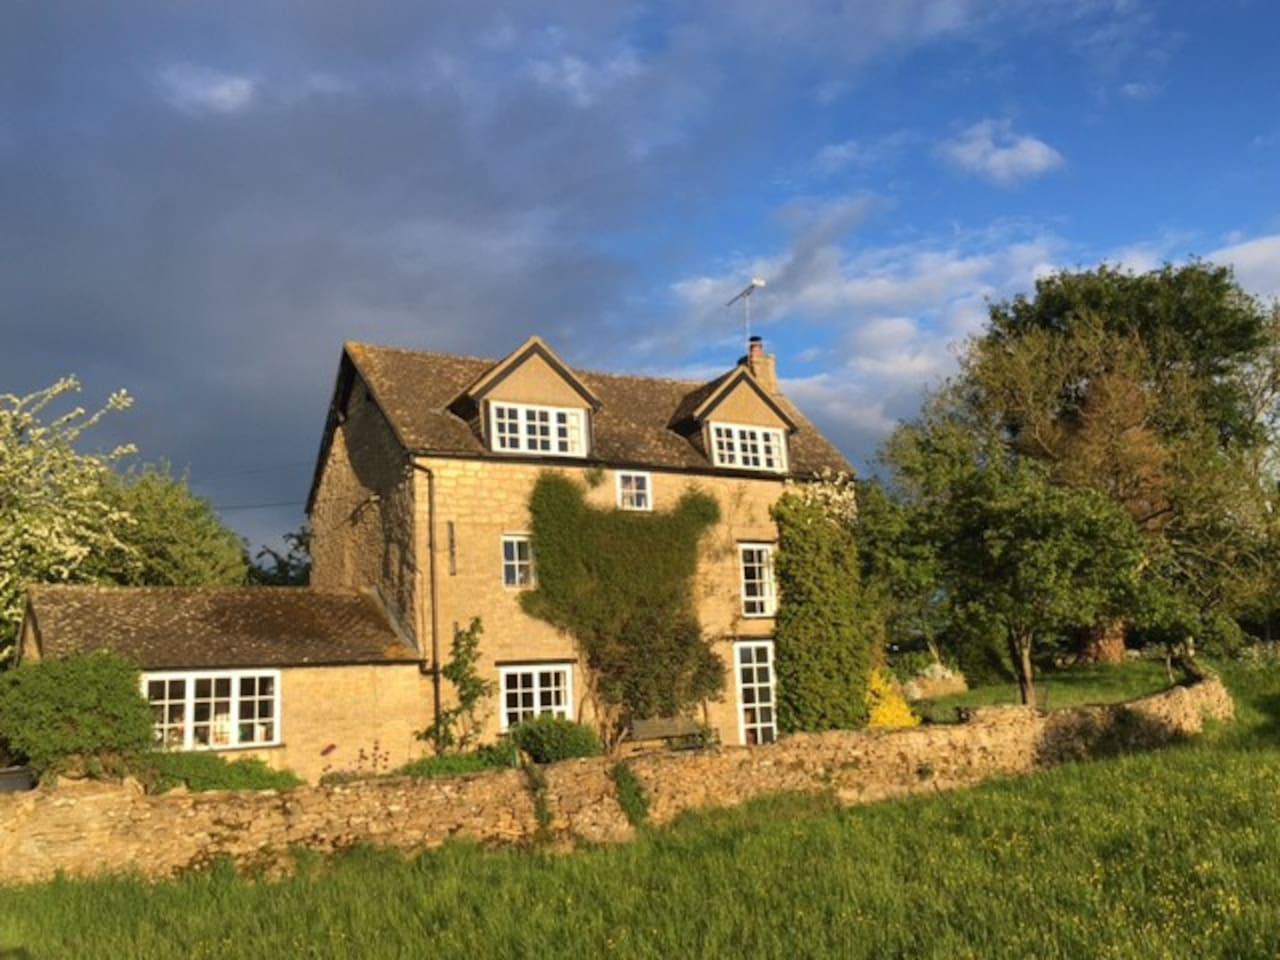 Our cottage seen from the field